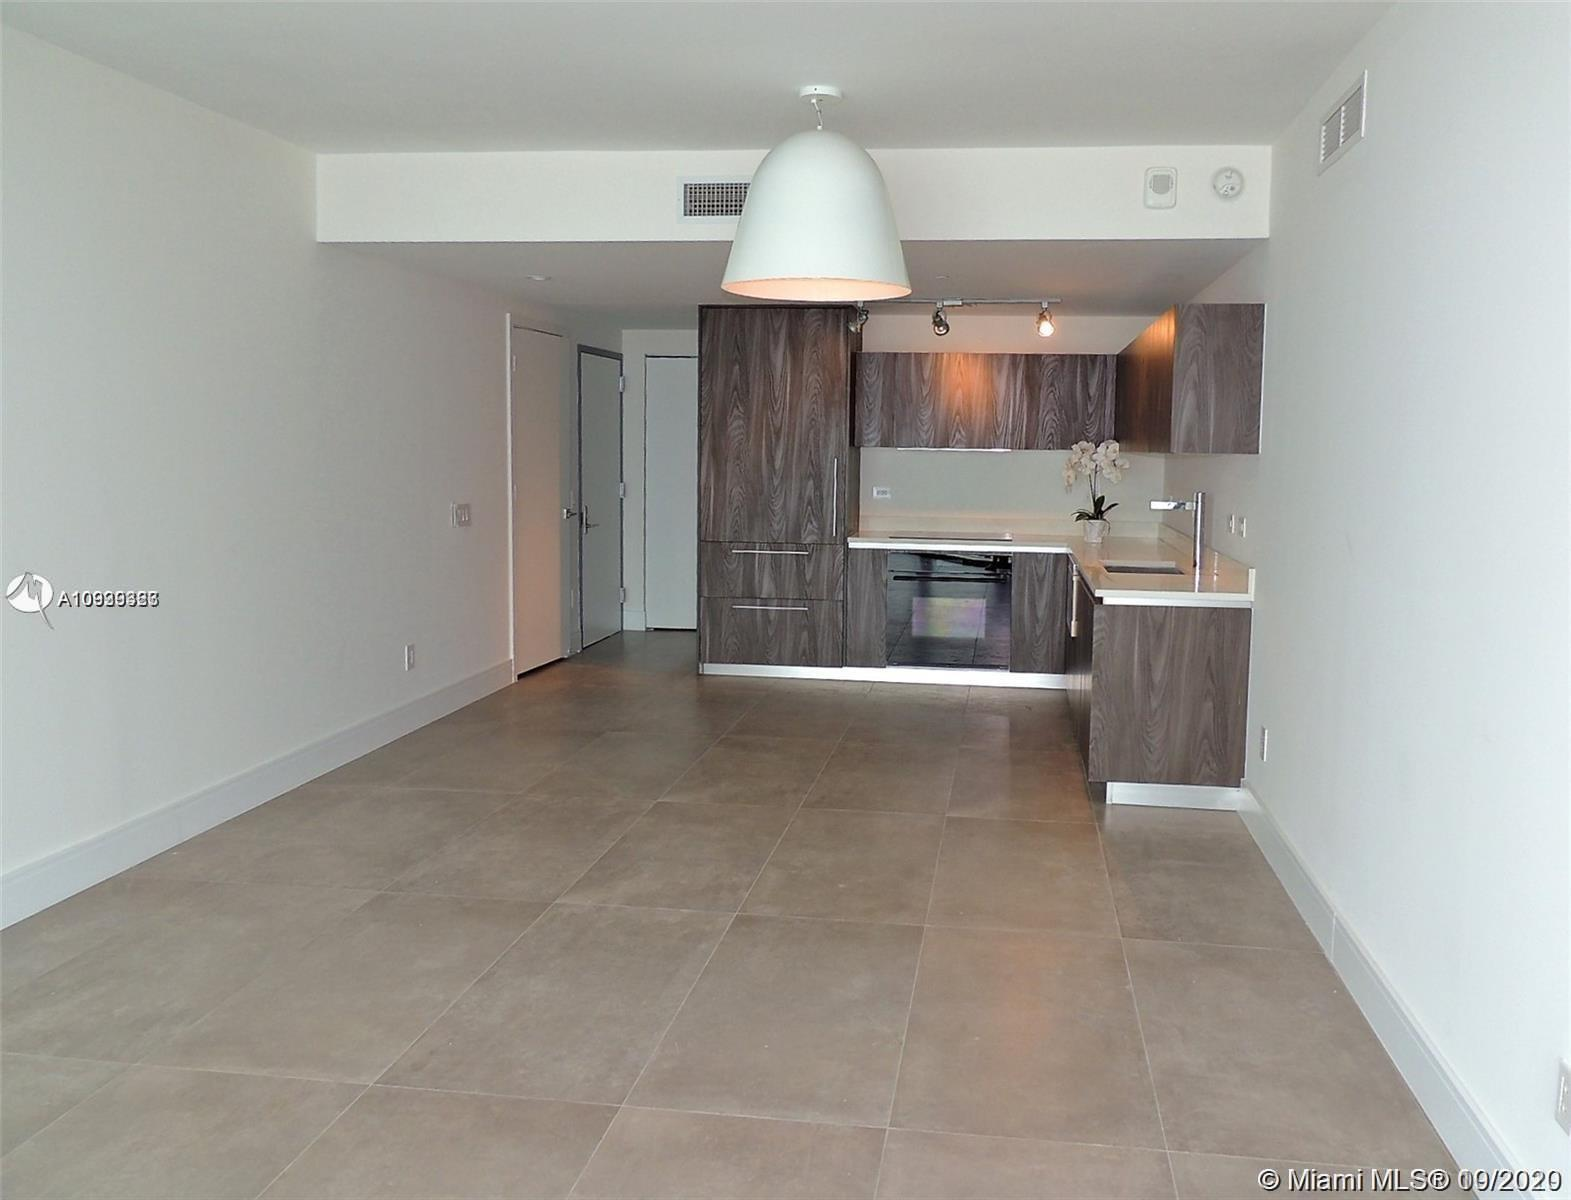 Spacious 3 bedrooms + den, 3 full baths and half bath with private foyer entrance and amazing views